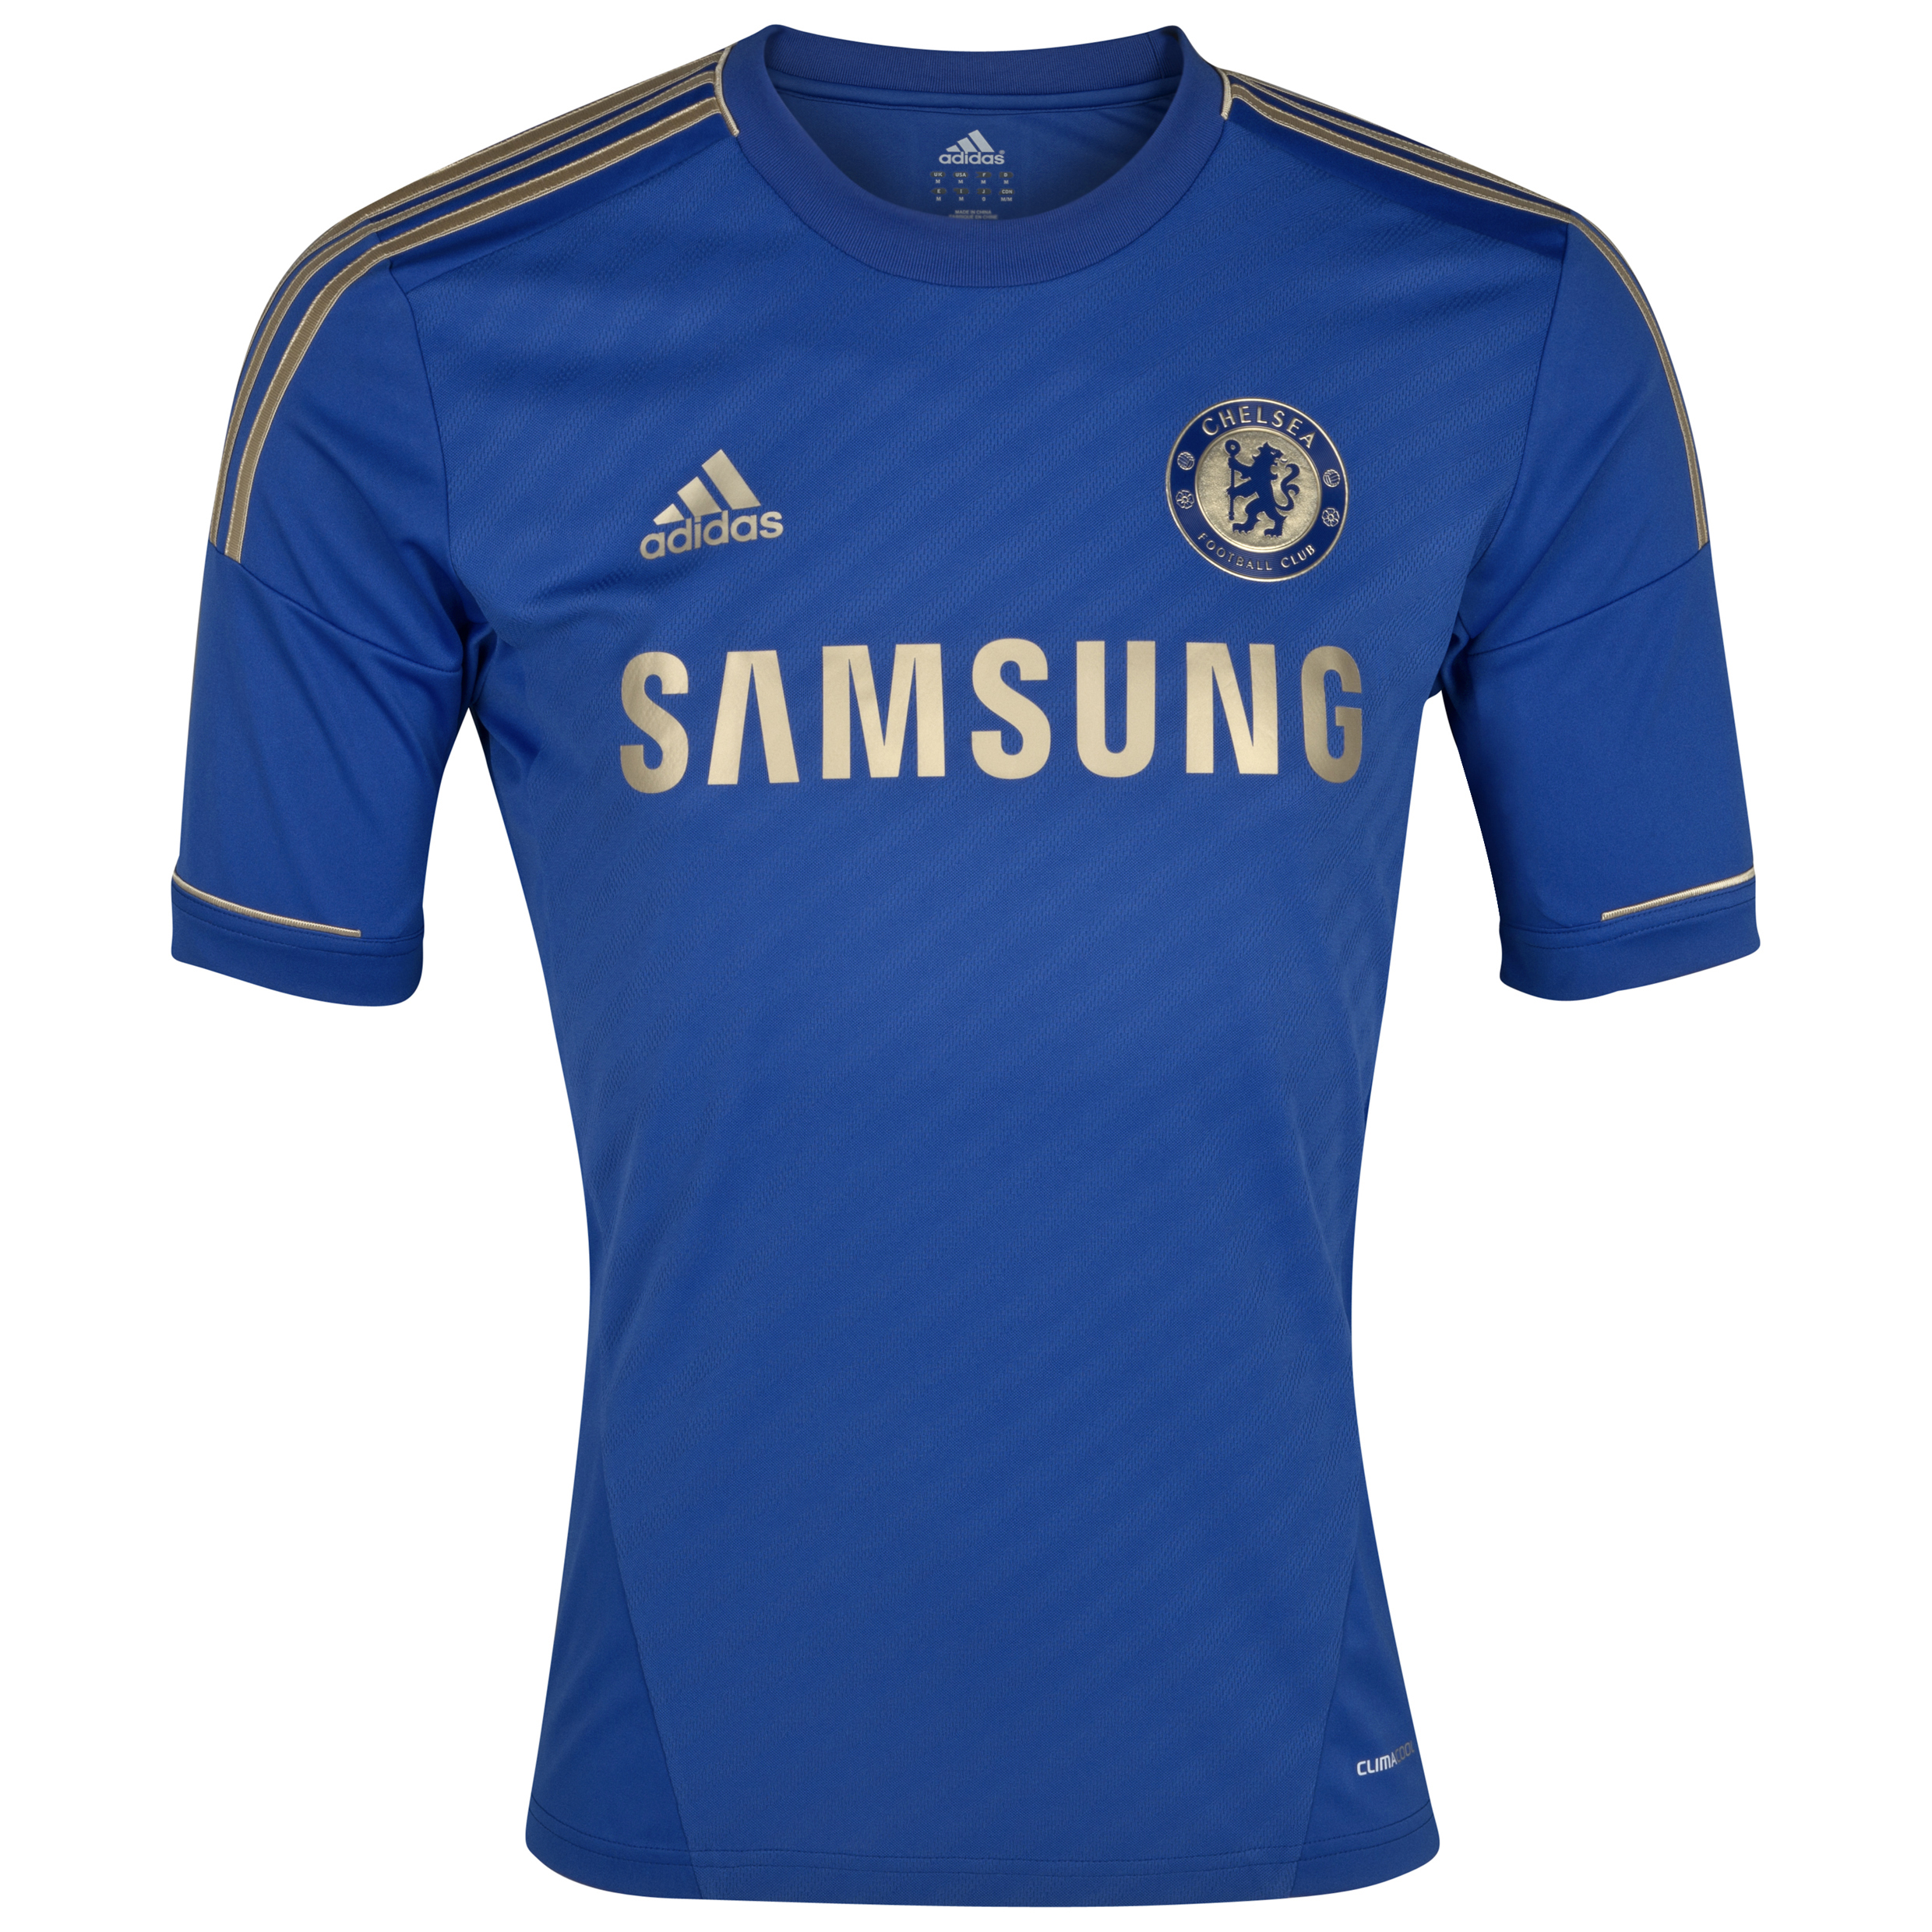 Chelsea Home Shirt 2012/13 Youths